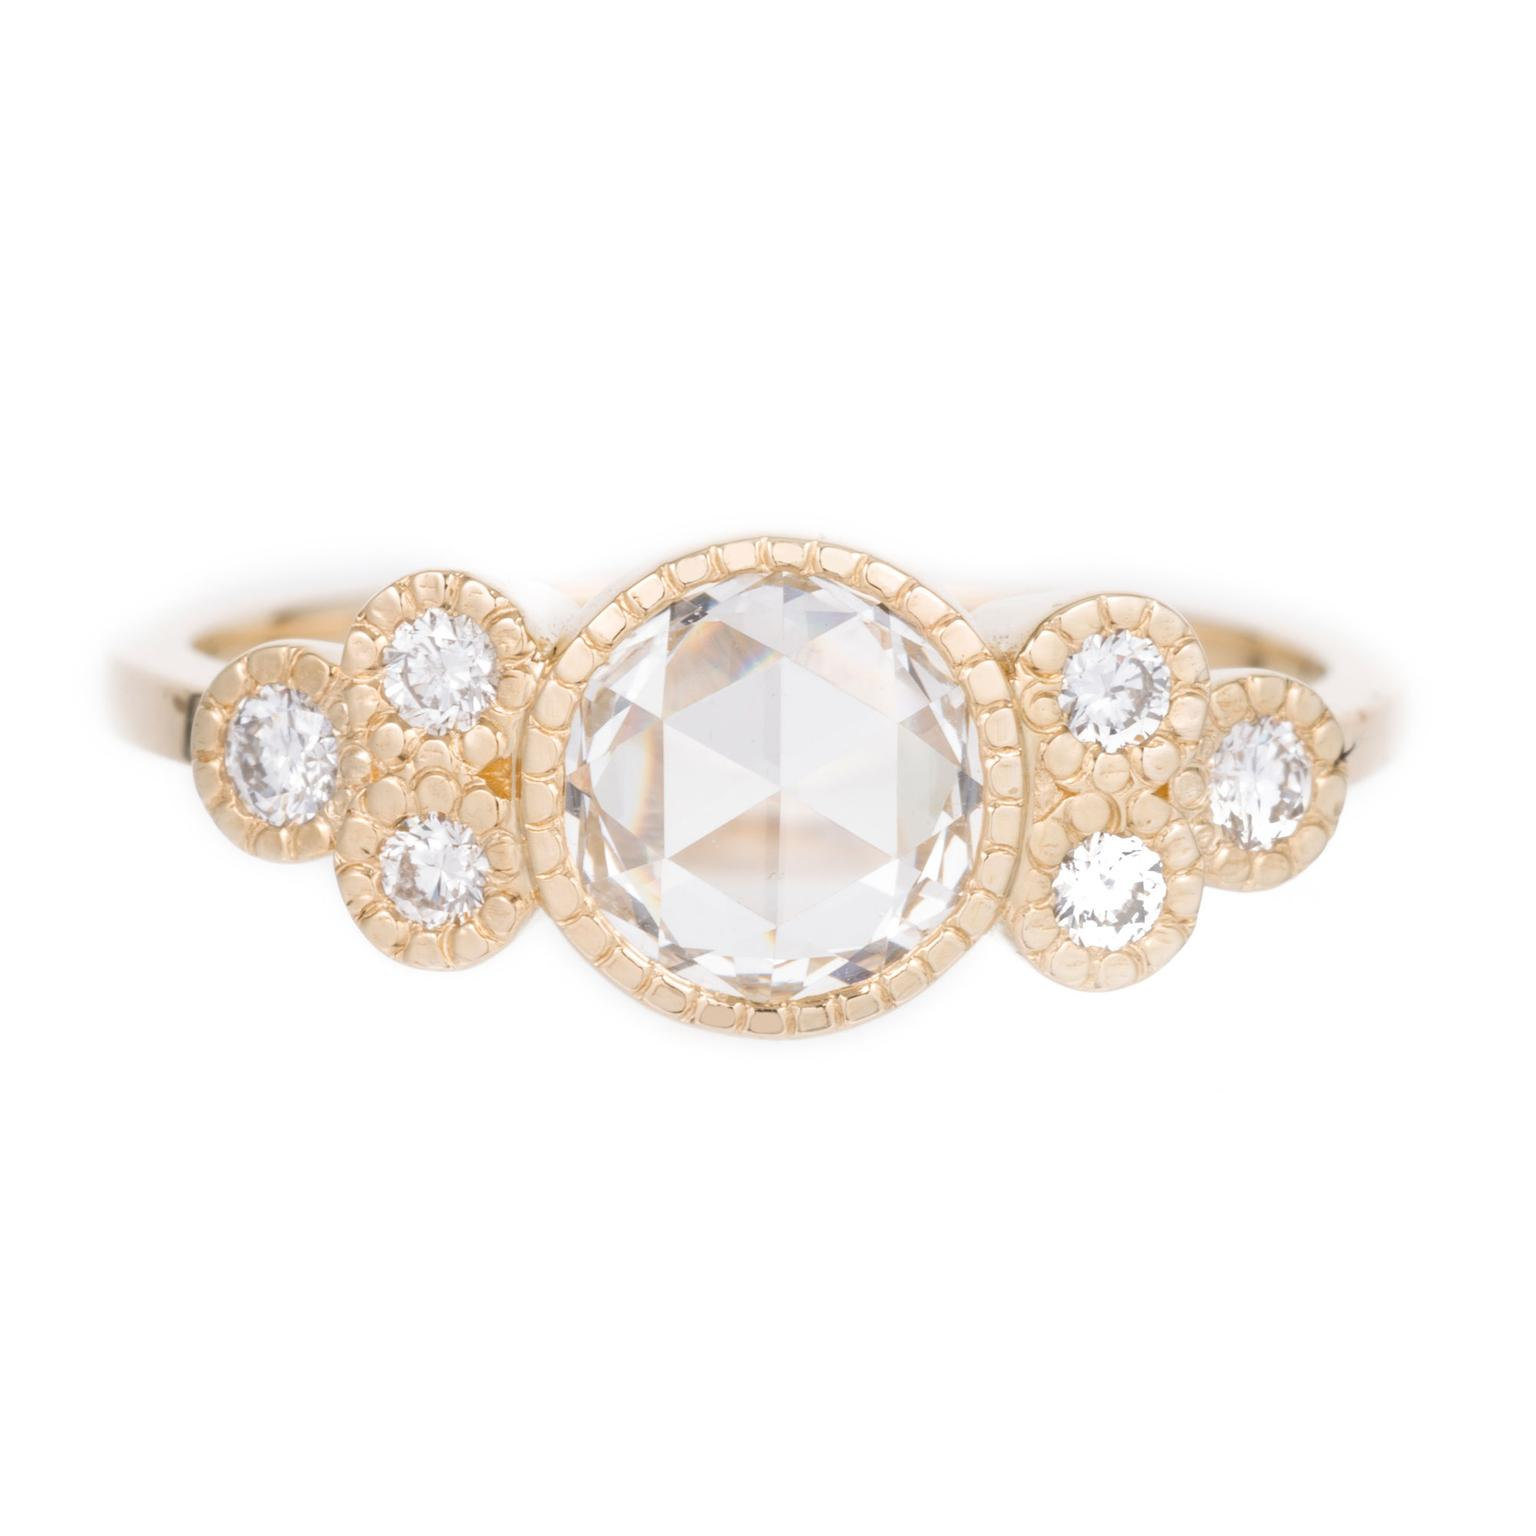 Jennie Kwon rose-cut diamond ring